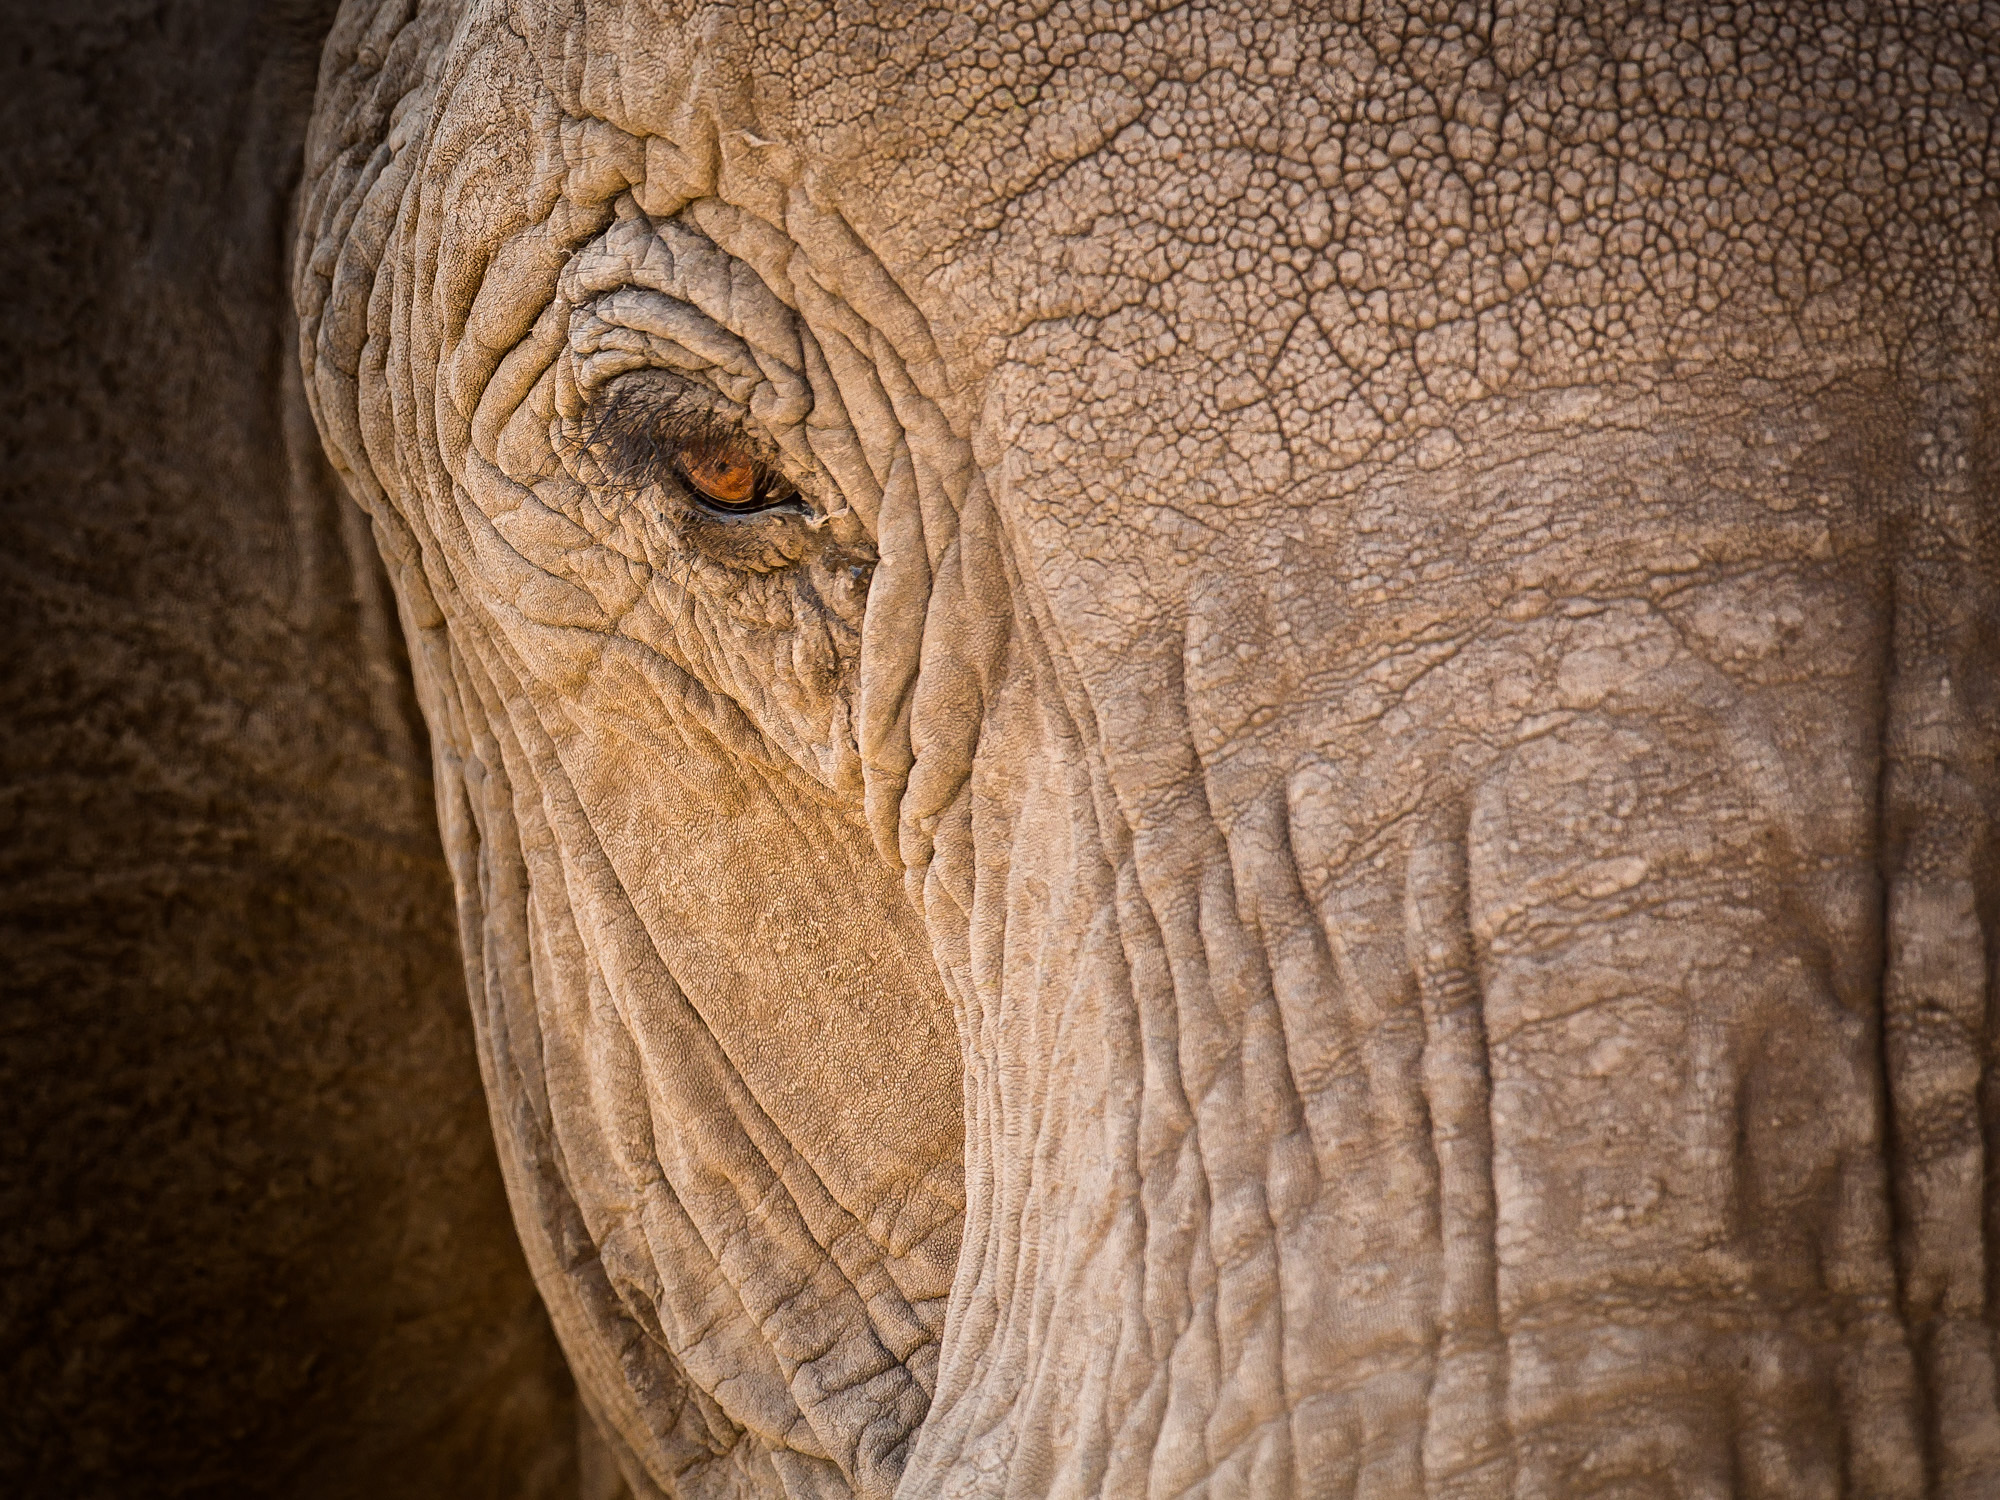 The classic elephant eye shots shows heaps of facial character.